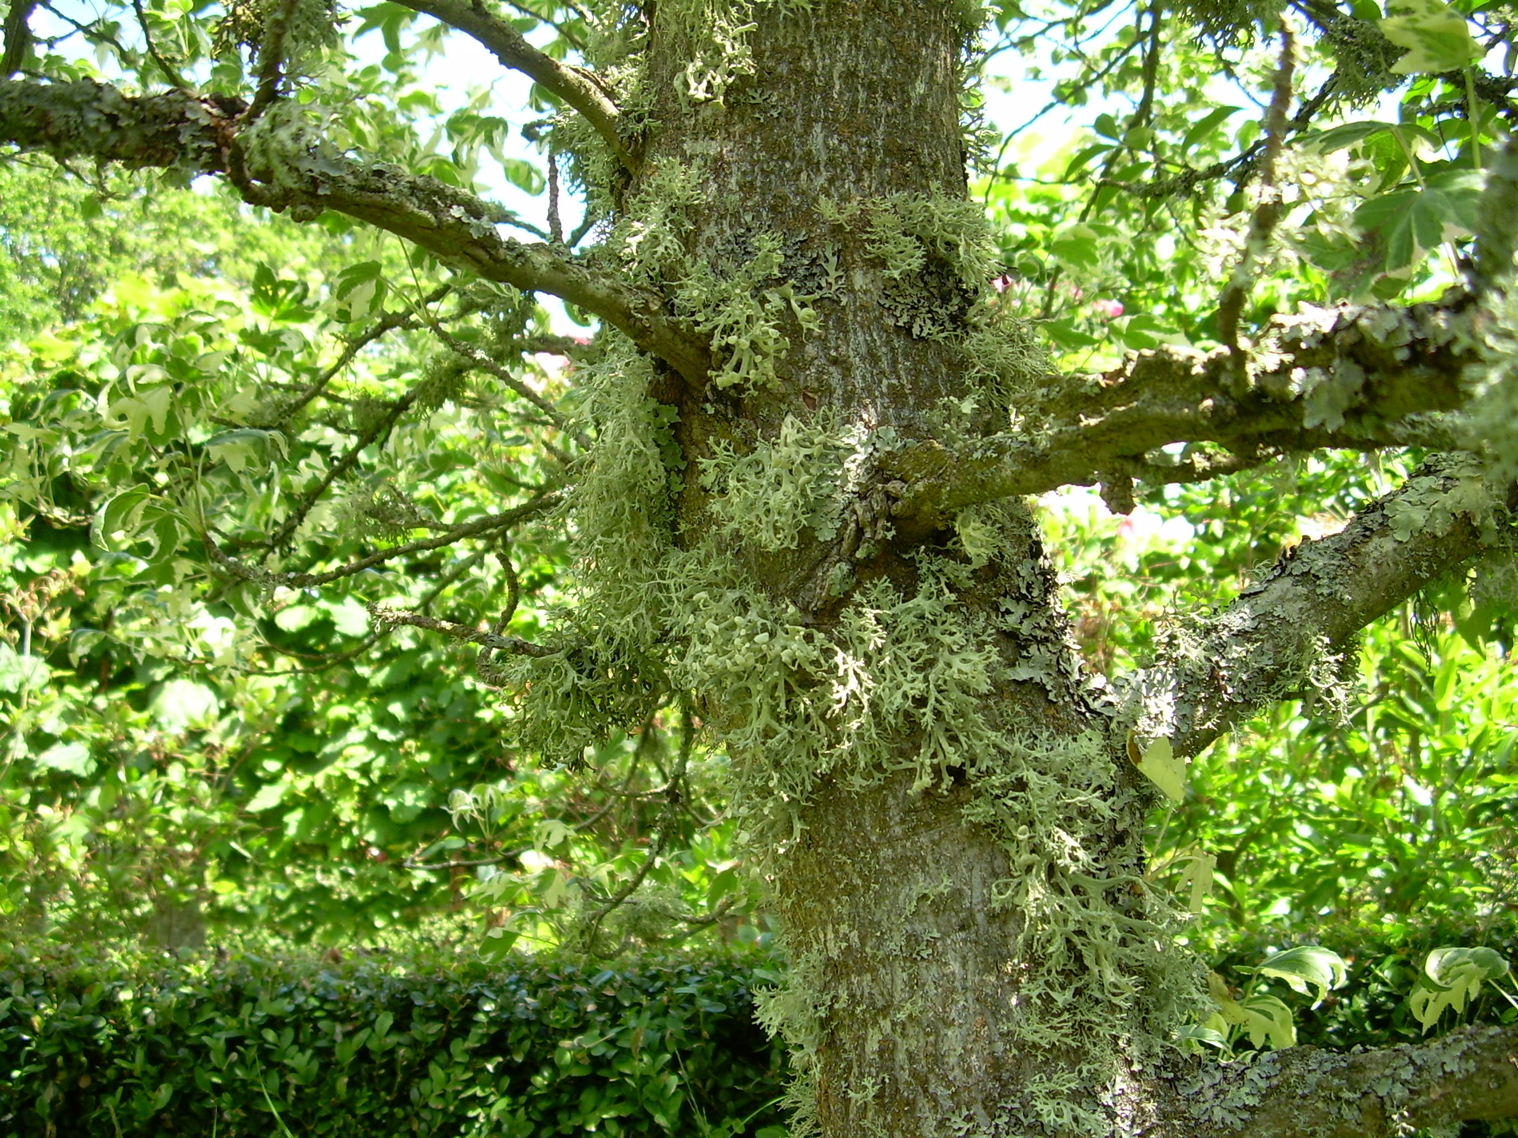 Tree covered with lichens